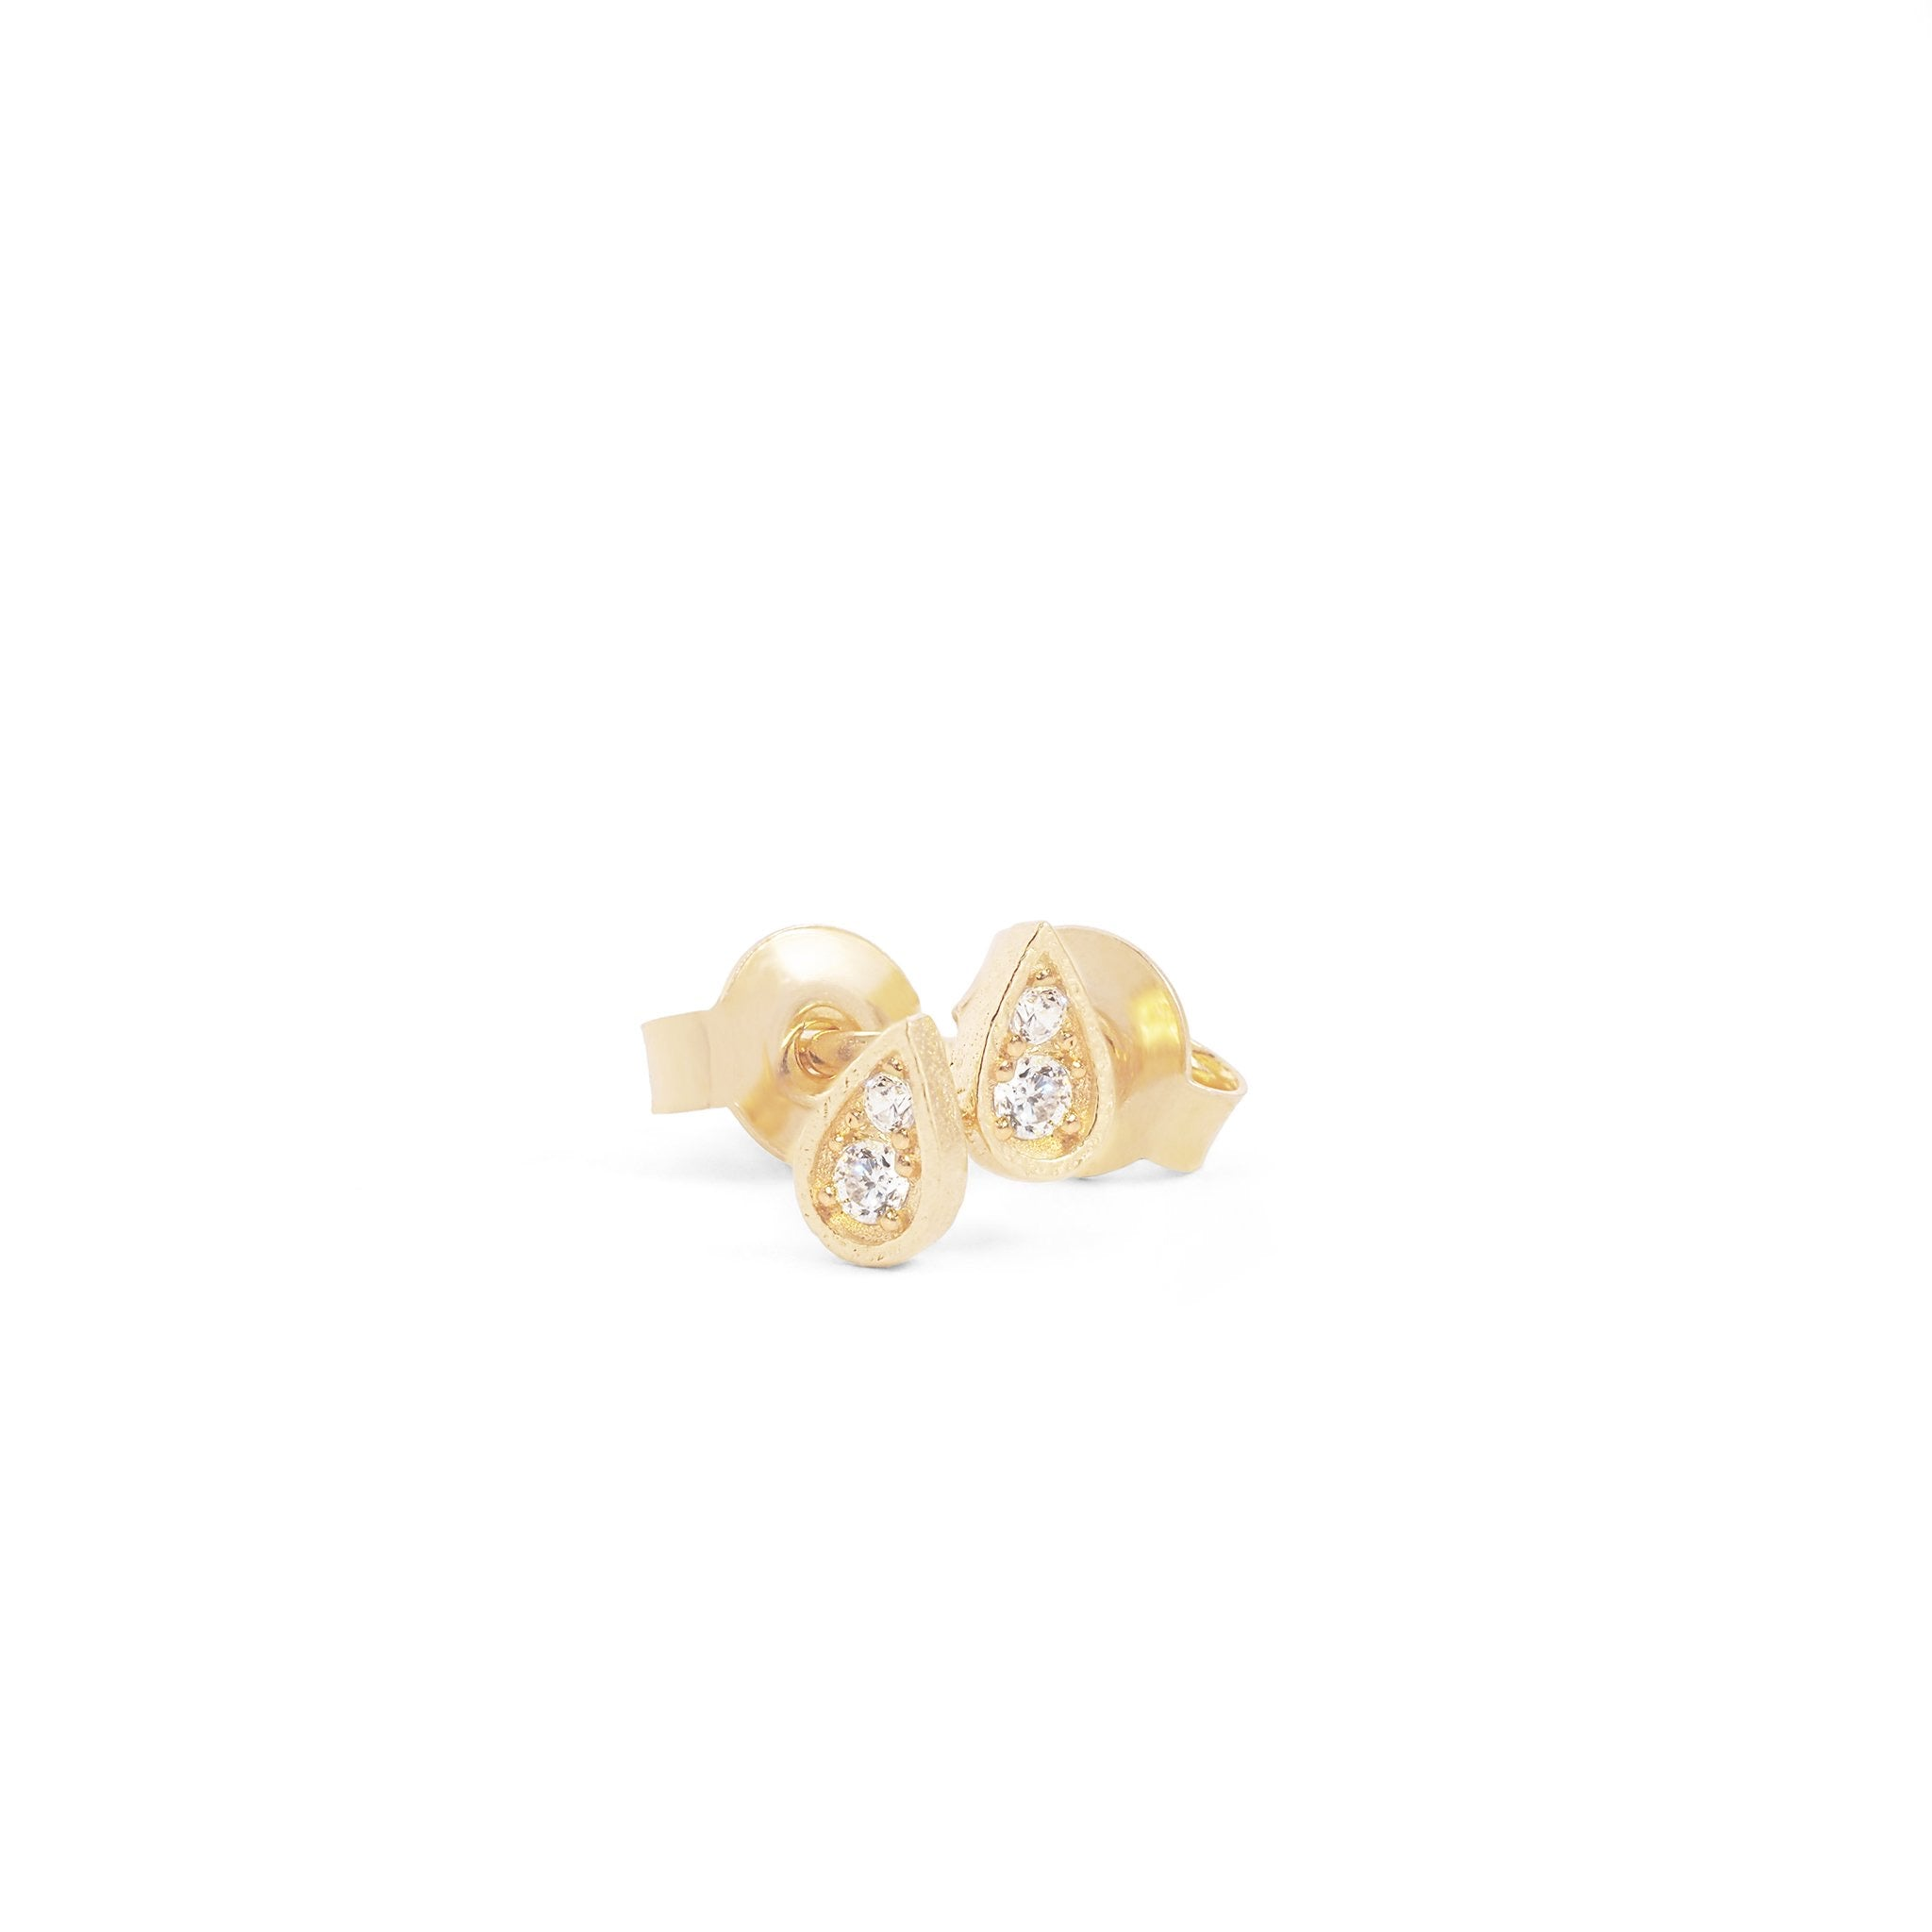 By Charlotte - Illuminate Stud Earrings in Gold